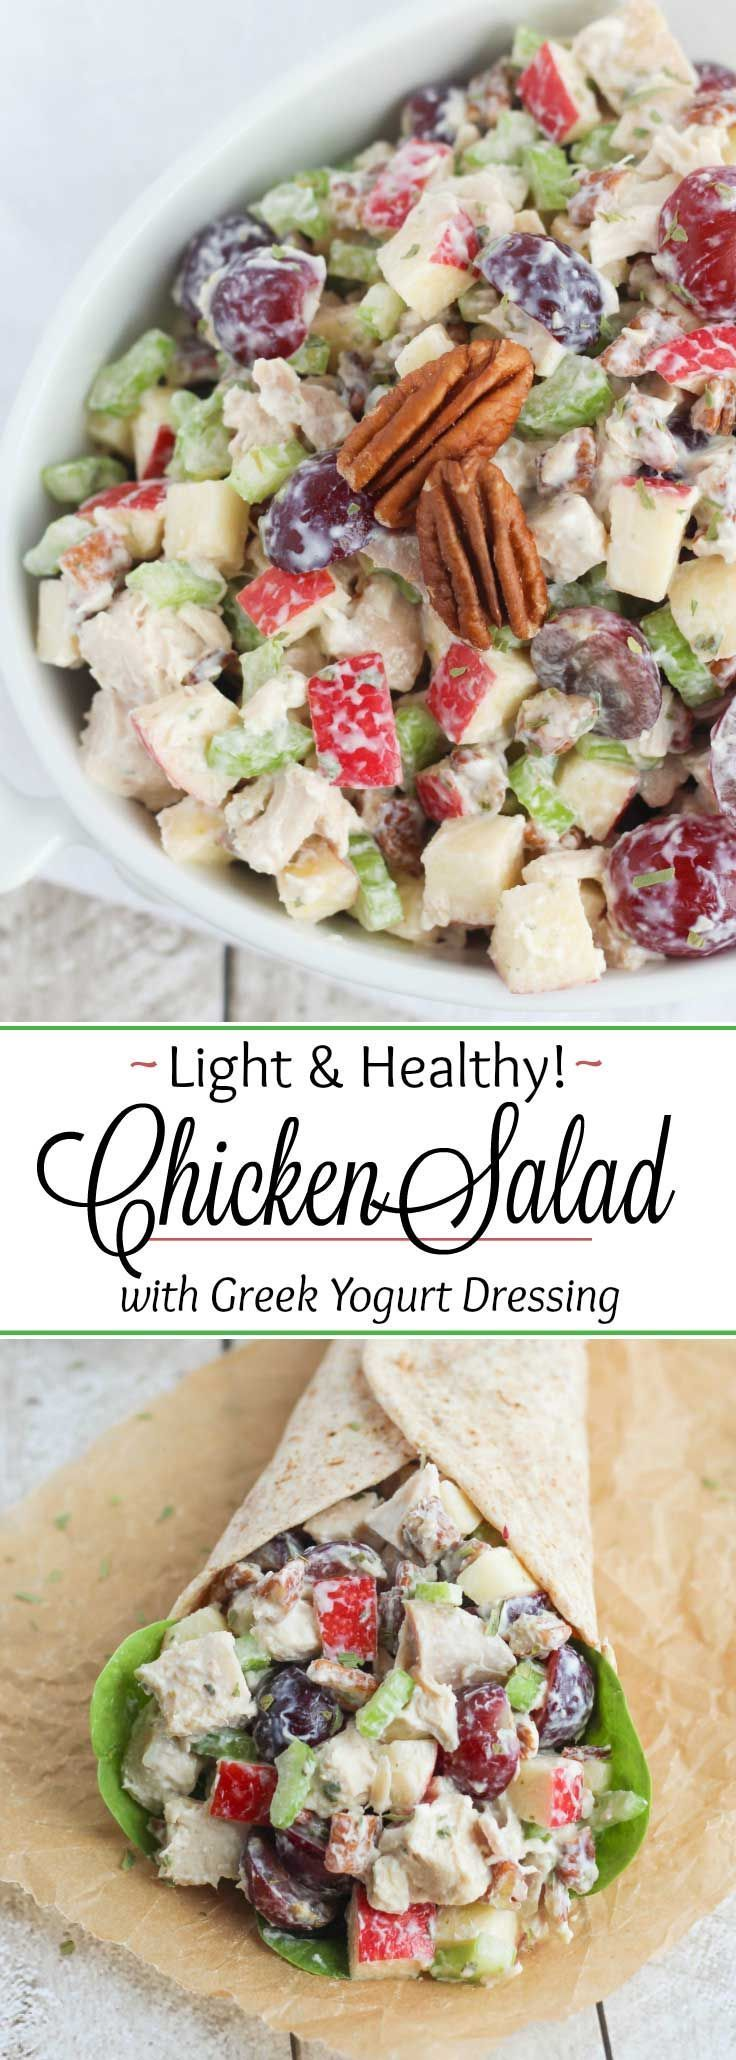 Bursting with delicious flavors and textures! This healthy chicken salad recipe has juicy grapes, crisp apples and crunchy pecans, plus a deliciously healthy Greek yogurt dressing (secret ingredient alert!). A no-mayo chicken salad recipe: perfect at summer picnics! This recipe for chicken salad with grapes is great for a weekday sandwich, but also special enough for a bridal shower, Mother's Day tea or ladies' lunch. So versatile – even serve it as an appetizer! | www.TwoHealthyKitchens.com